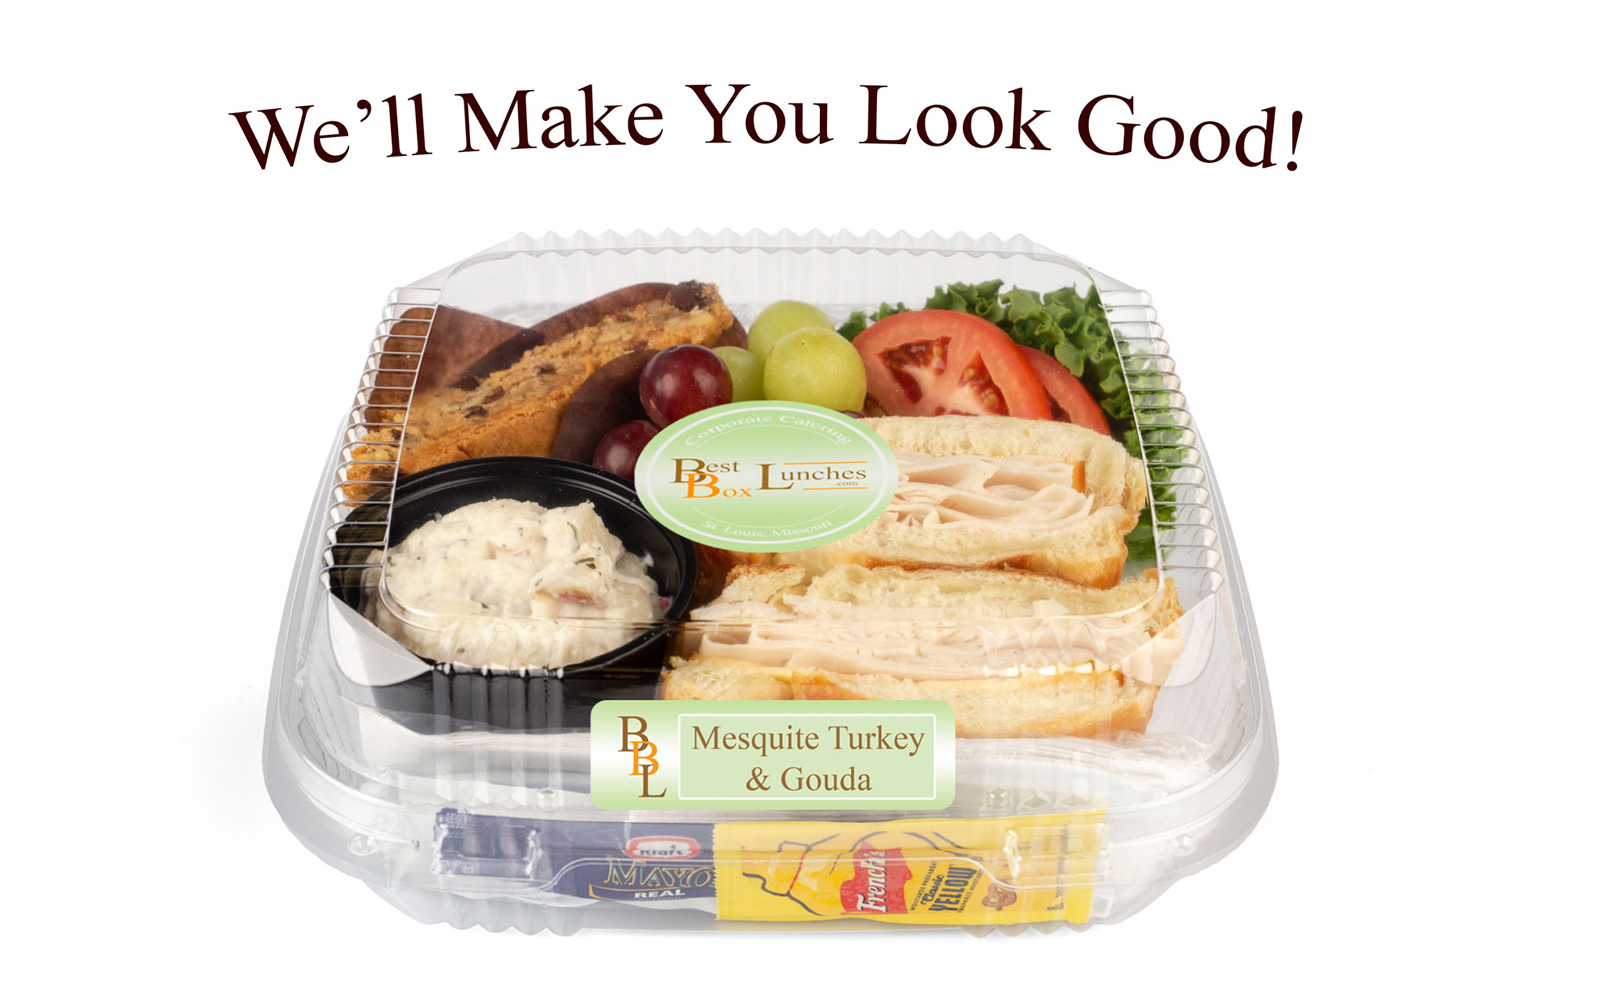 Best Box Lunches - Box lunch catering